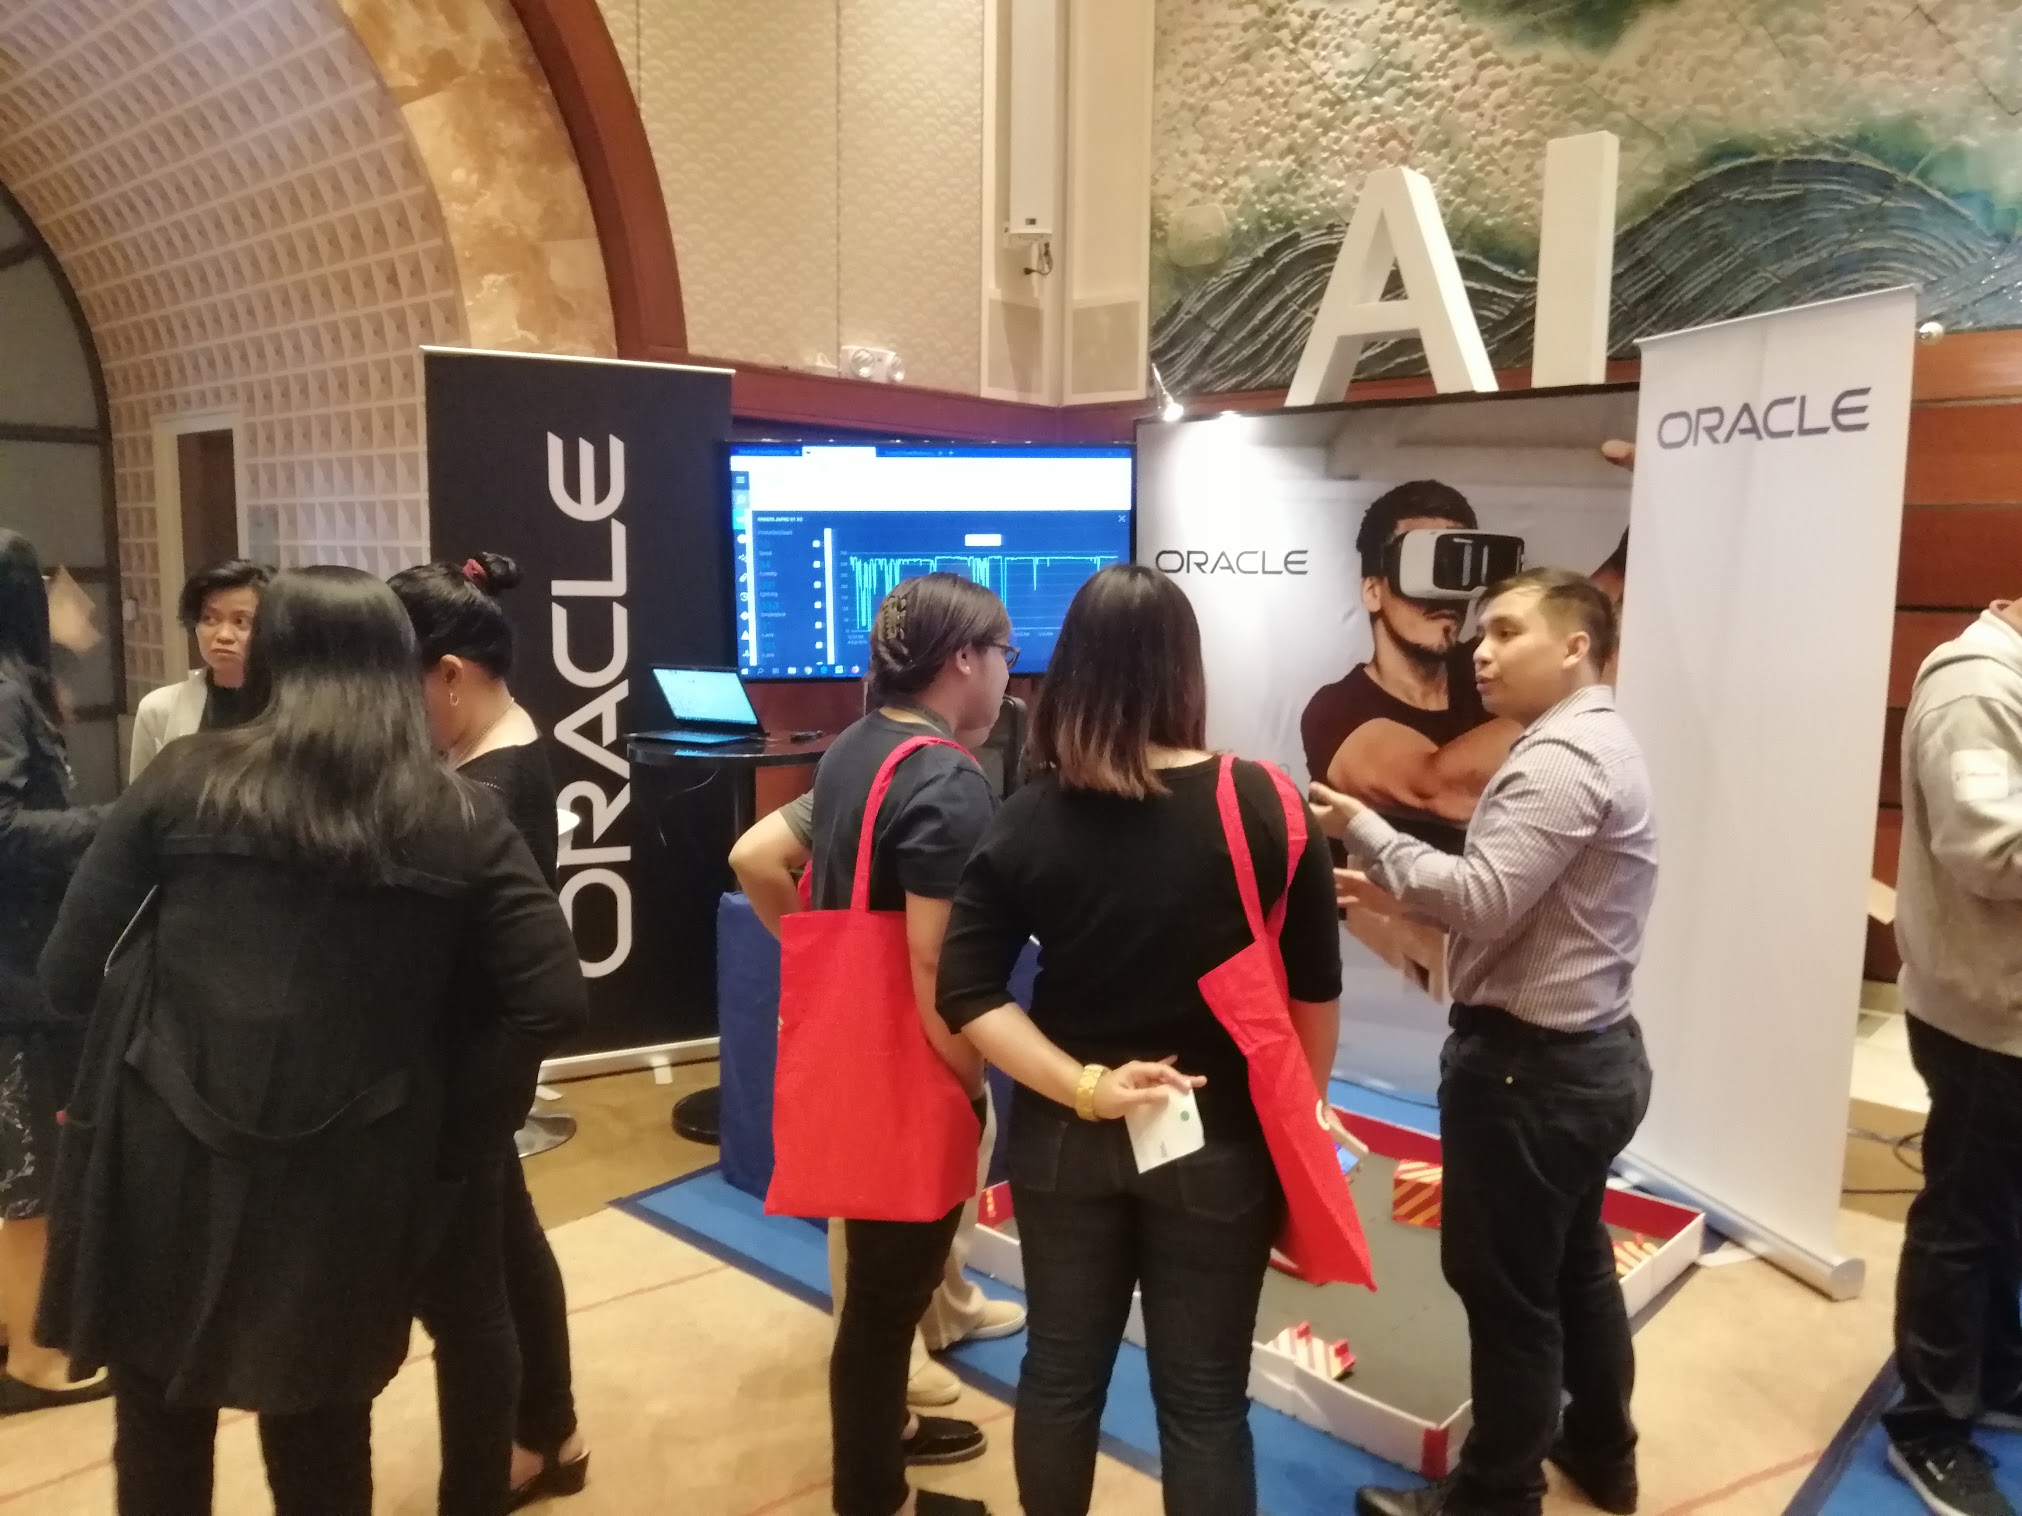 12:26 p.m. - Make sure to drop by at the Oracle Booth!